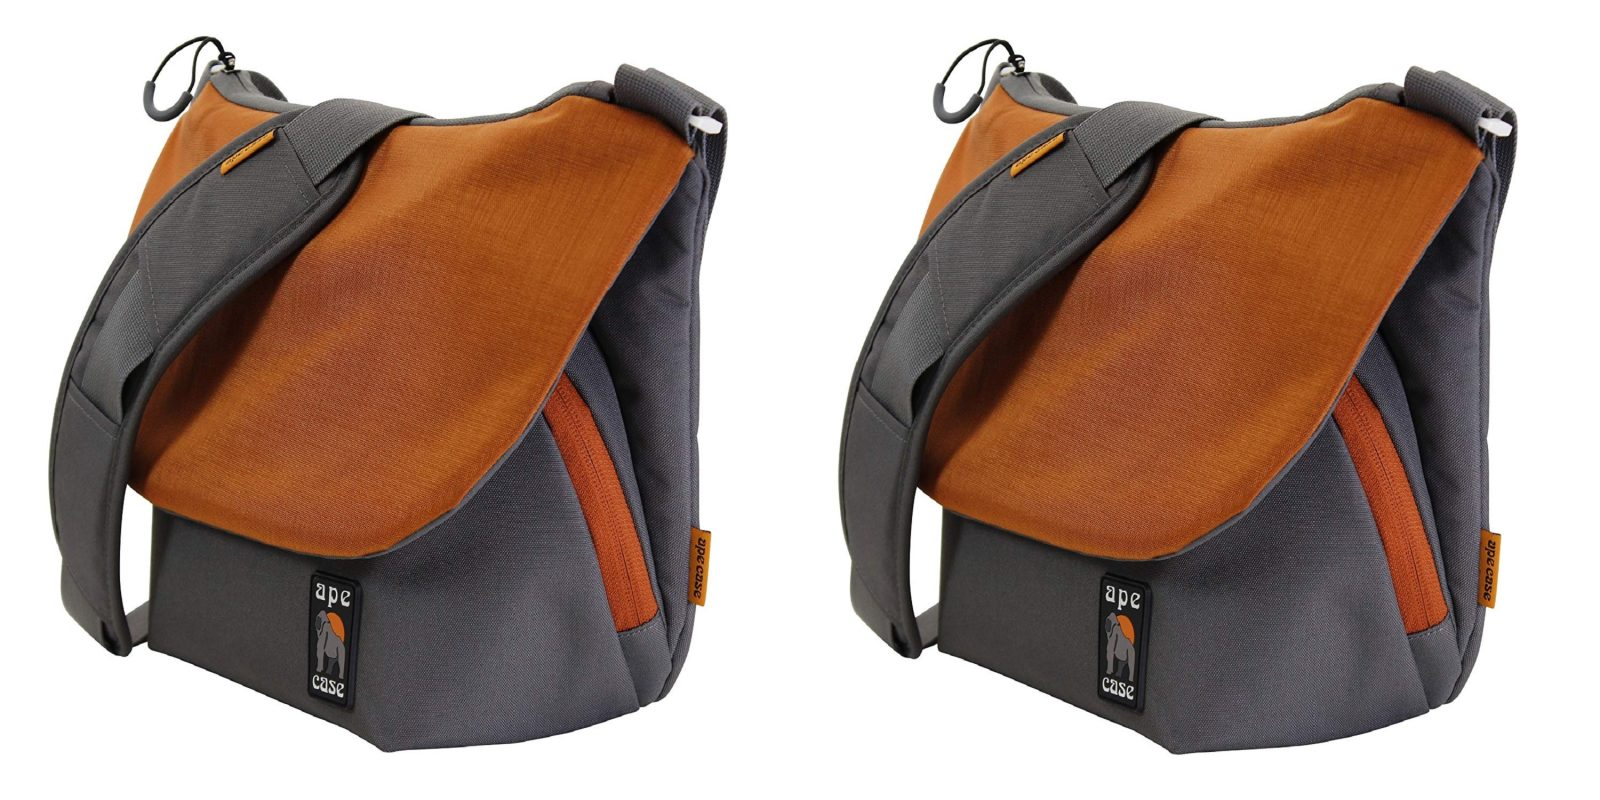 Tote your DSLR and iPad in the Ape Case Large Messenger Bag for only $23.50